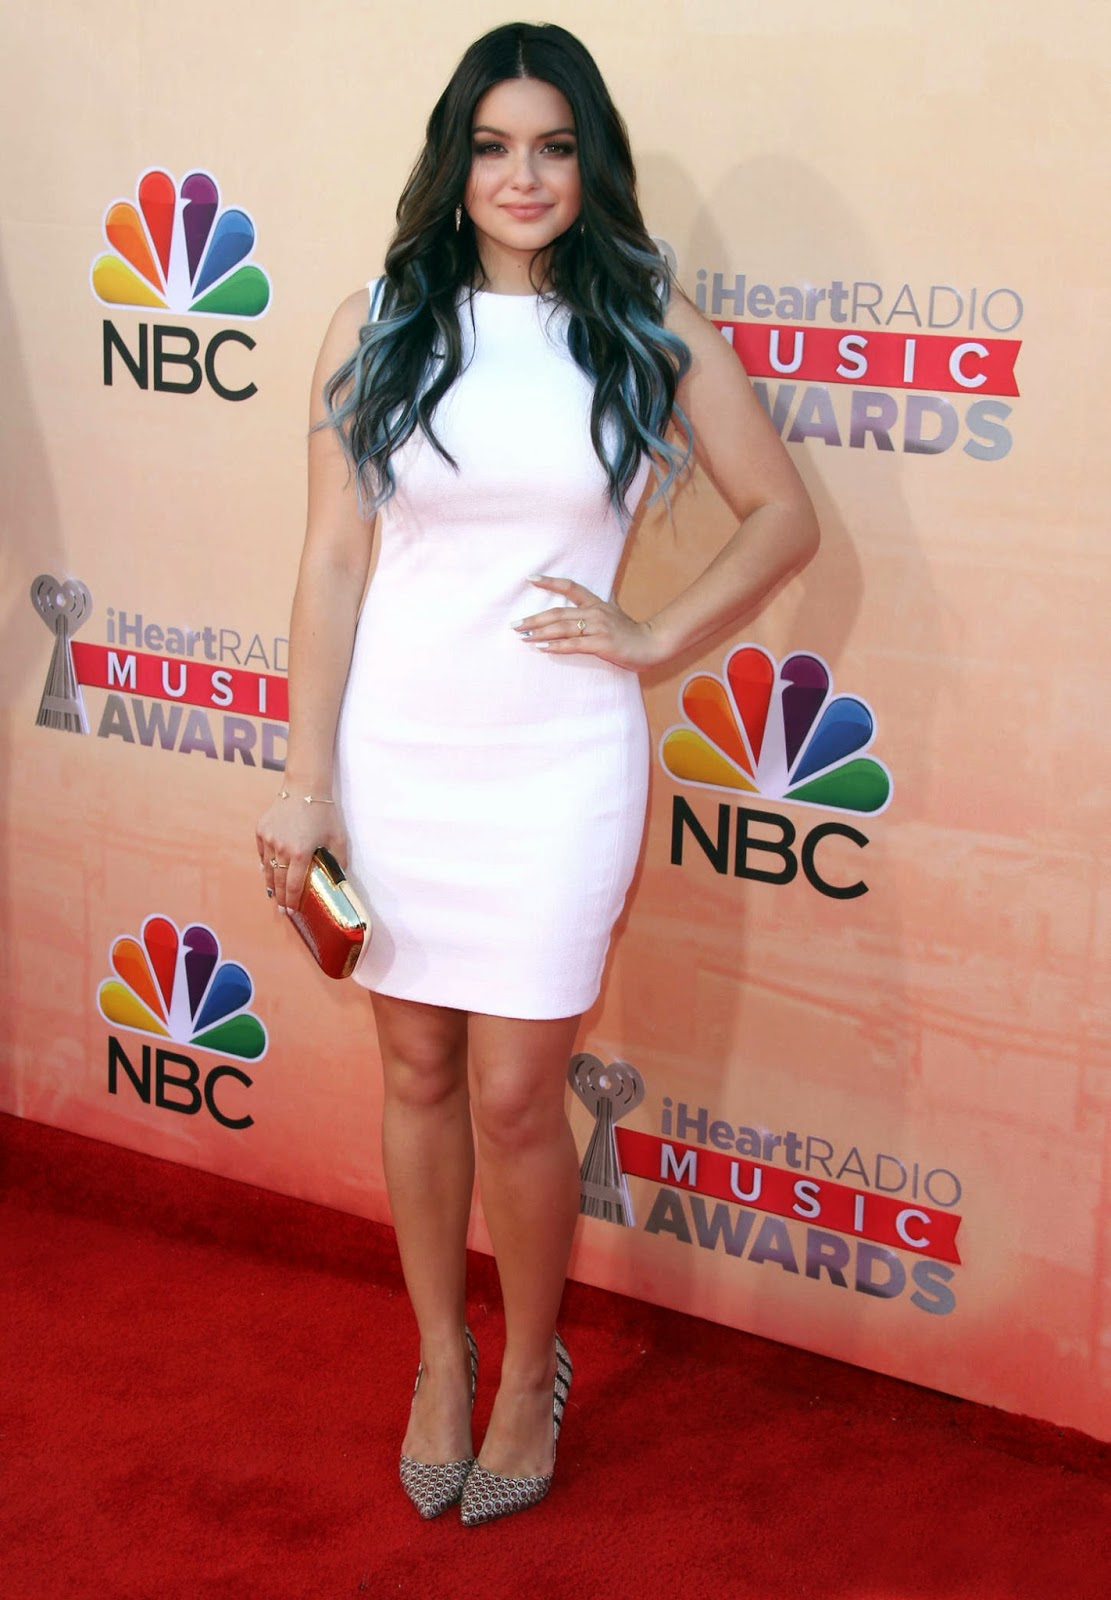 Ariel Winter in a figure hugging white dress at the 2015 iHeart Radio Music Awards in LA